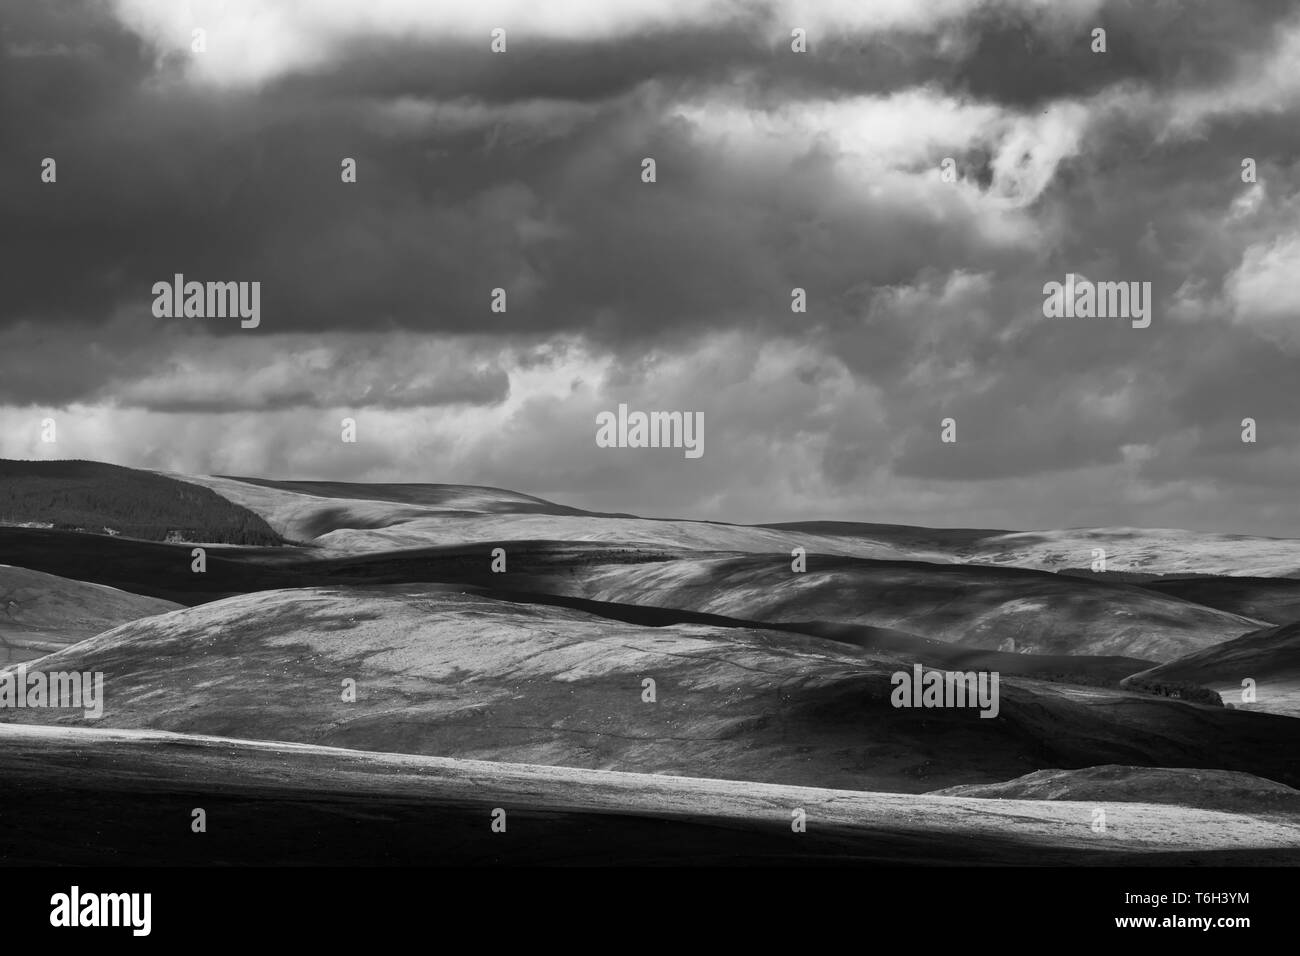 Otterburn, Northumberland, England, UK. 27th April 2019. Looking north east from Featherwood across artillery firing ranges on Otterburn Camp into Upp - Stock Image